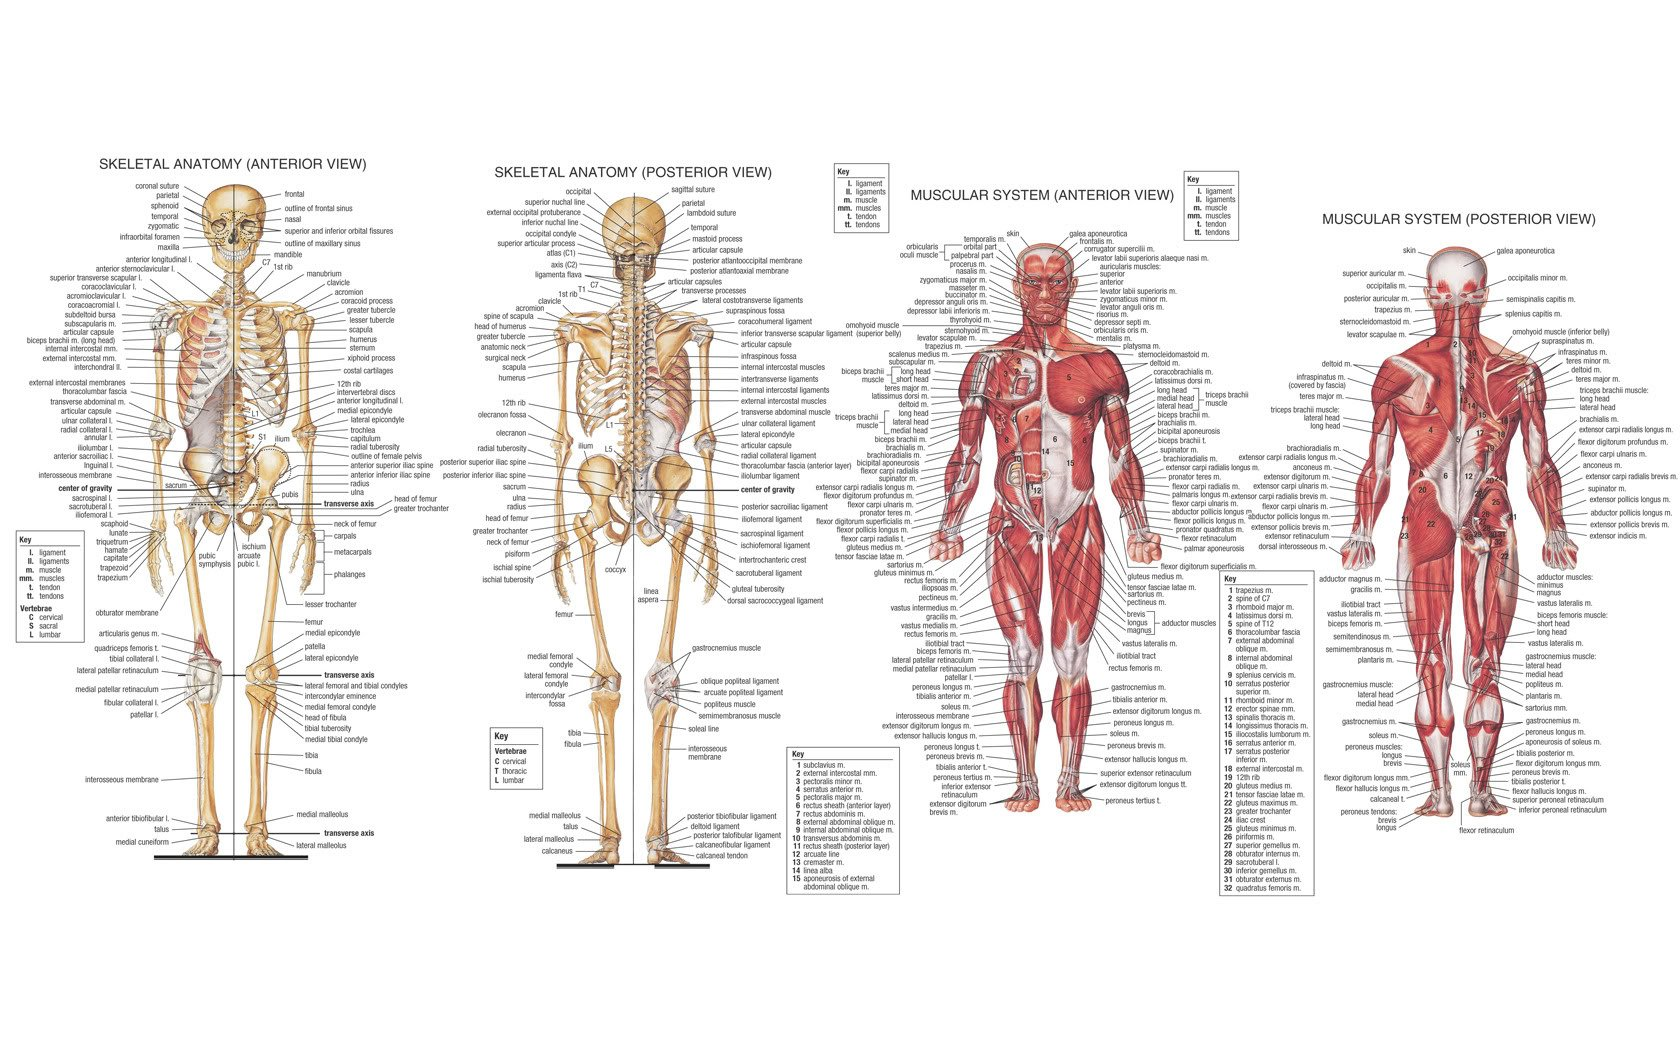 63 Anatomy HD Wallpapers | Background Images - Wallpaper Abyss